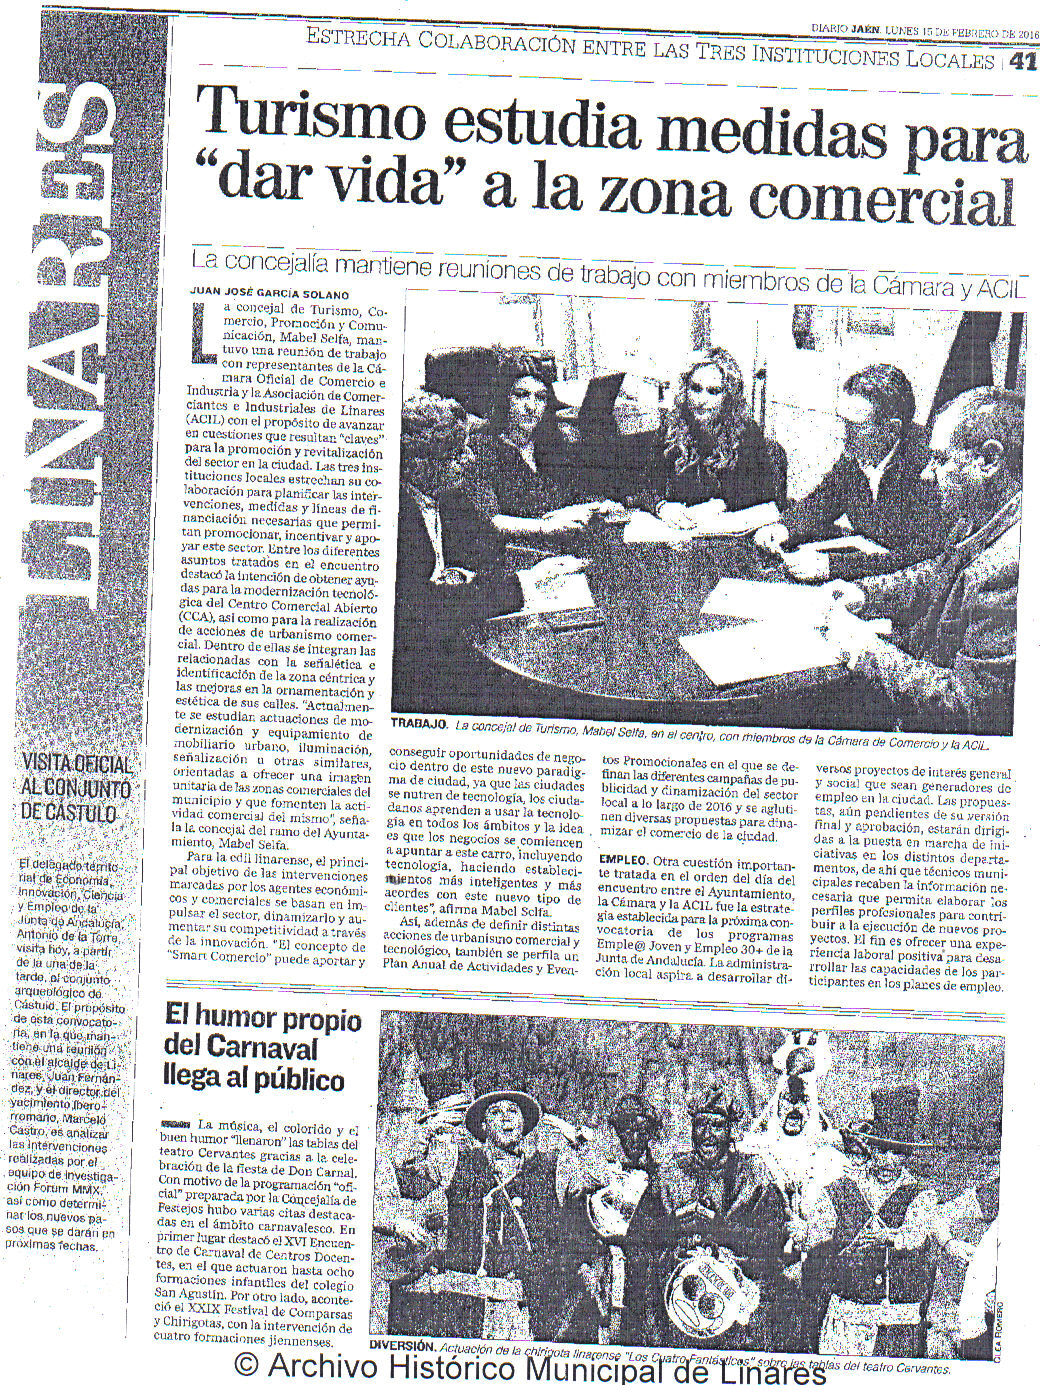 Noticia Prensa 15 Feb Diario jaén